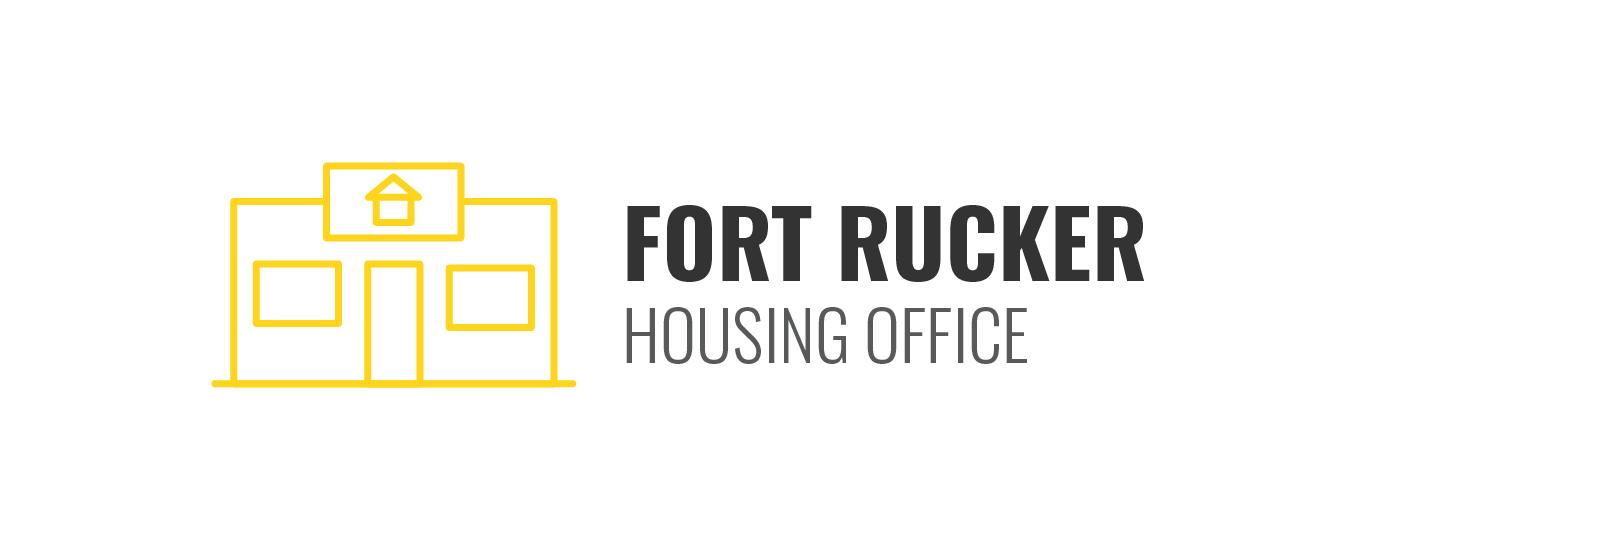 Fort Rucker Housing Office